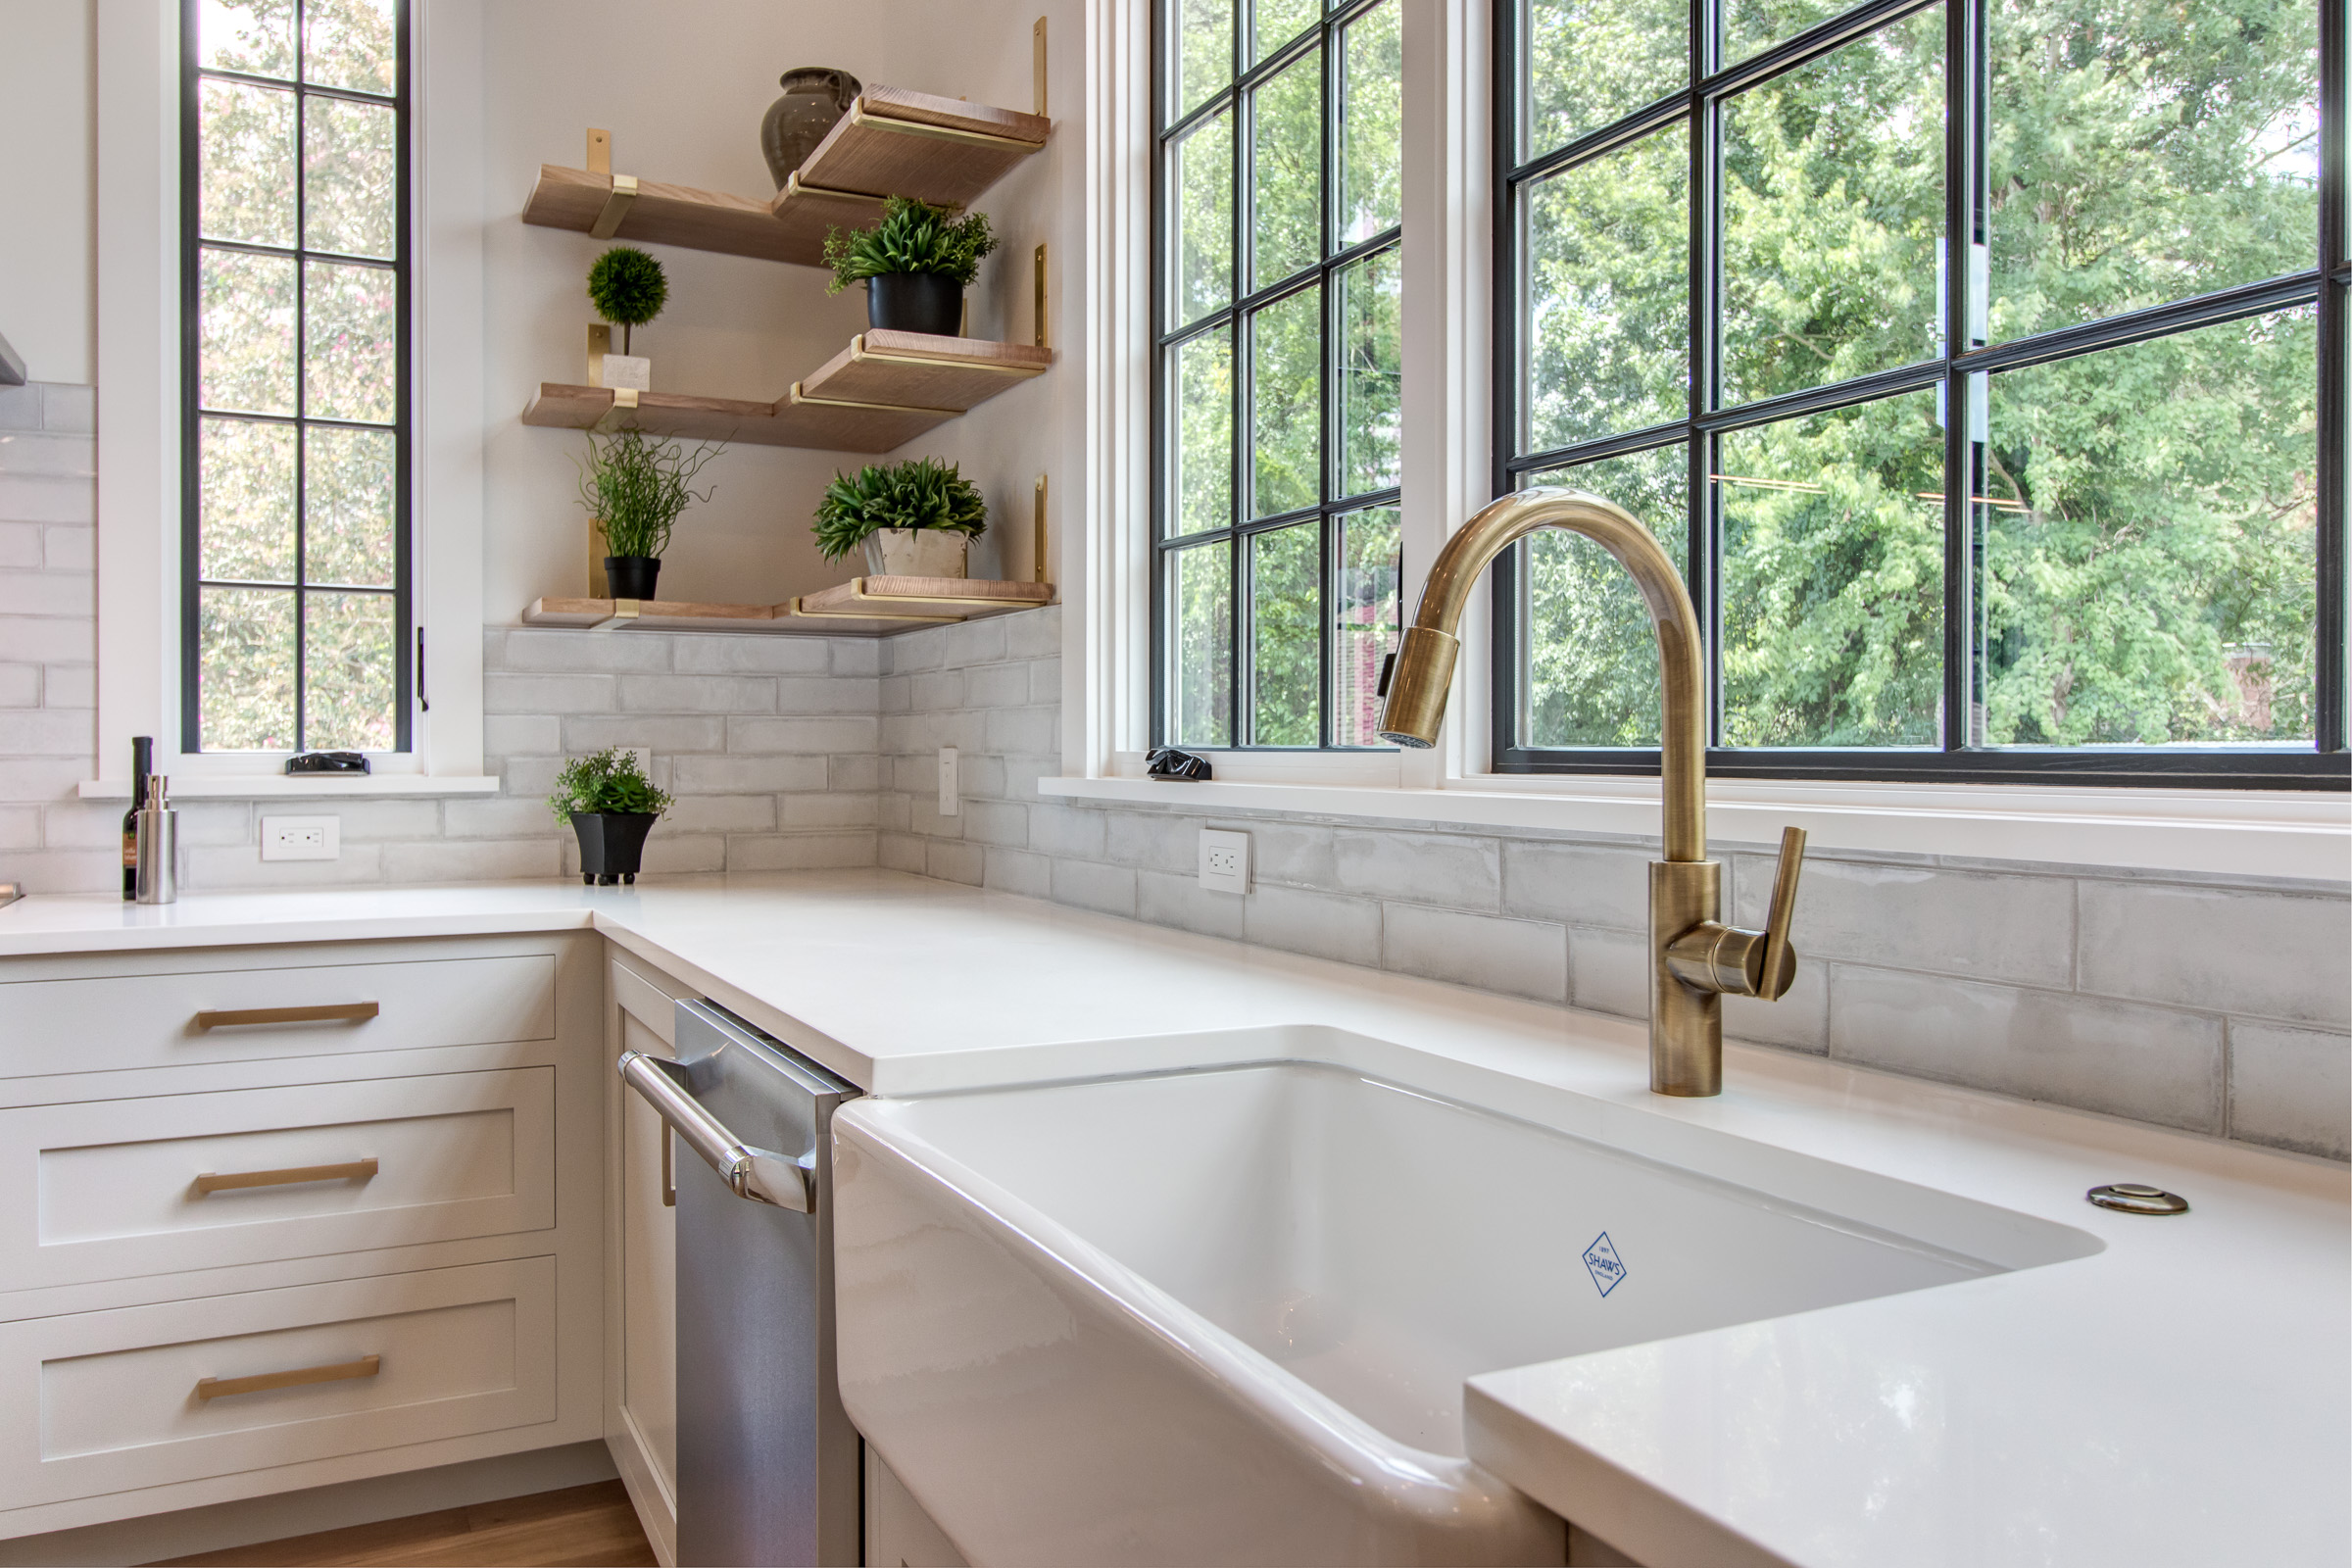 Farmhouse sink with antique brass faucet, open shelving, white counters, gold hardware.